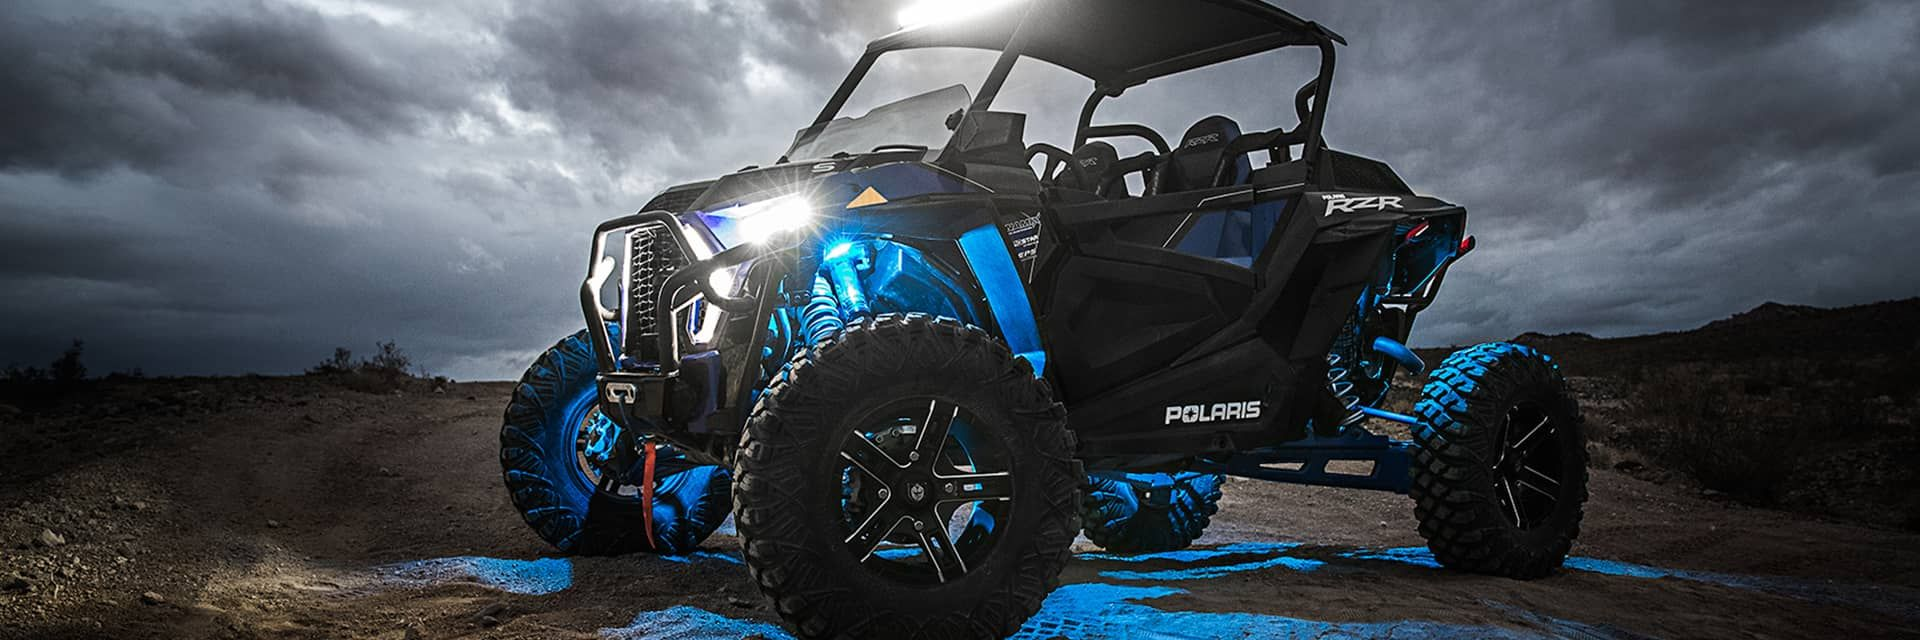 Polaris RZR is available at Up North Power & Sports  | Park Rapids, MN